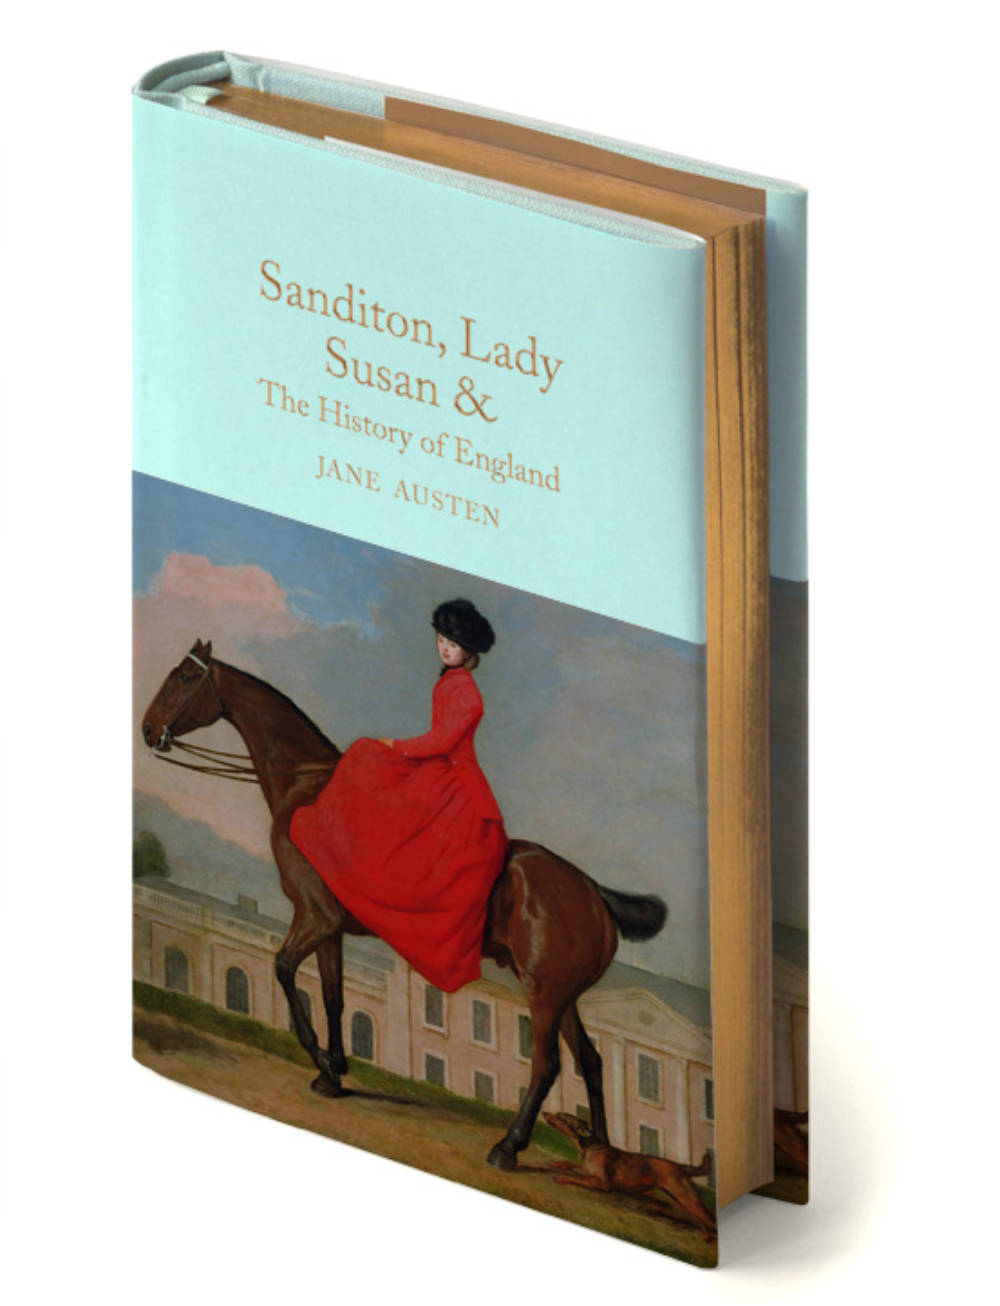 Sanditon, Lady Susan, & the History of England: &c. the Juvenilia and Shorter Works of Jane Austen